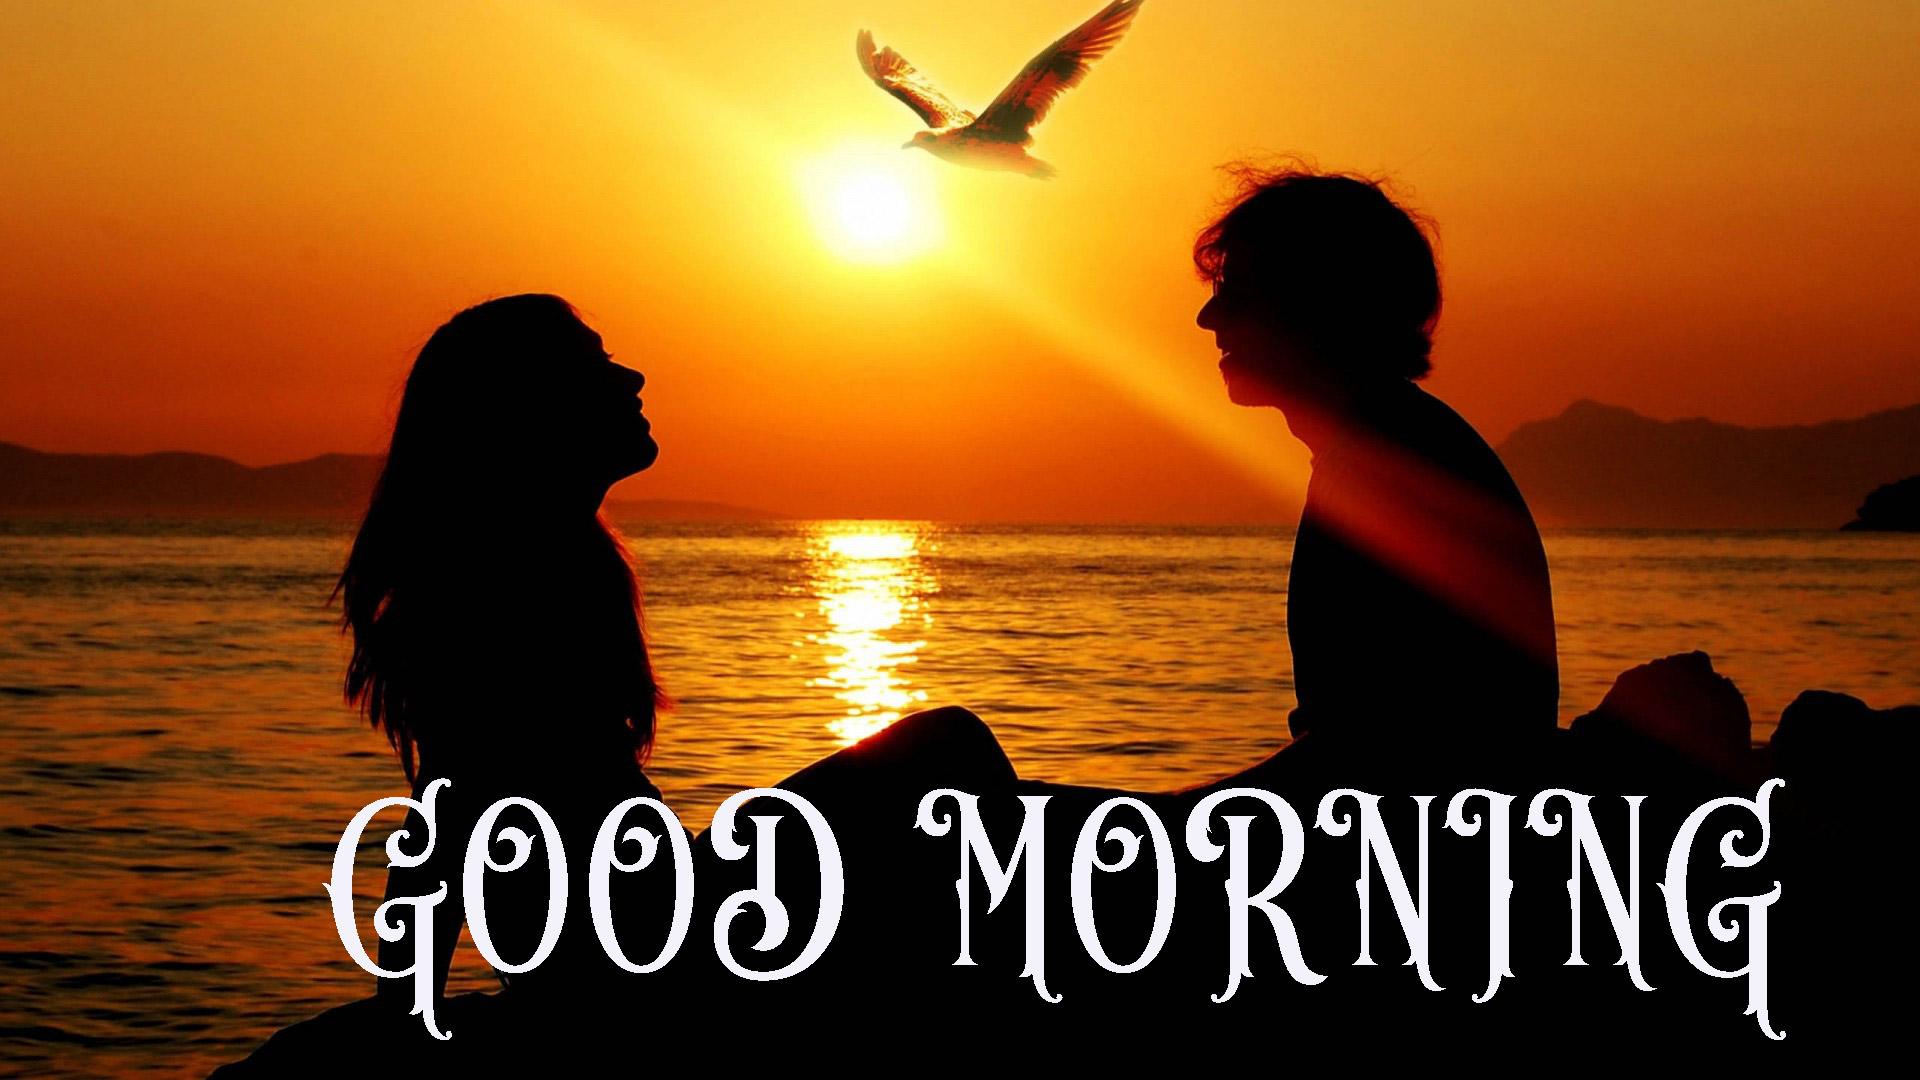 Good Morning Images Wallpaper Pictures Pics Photo Download